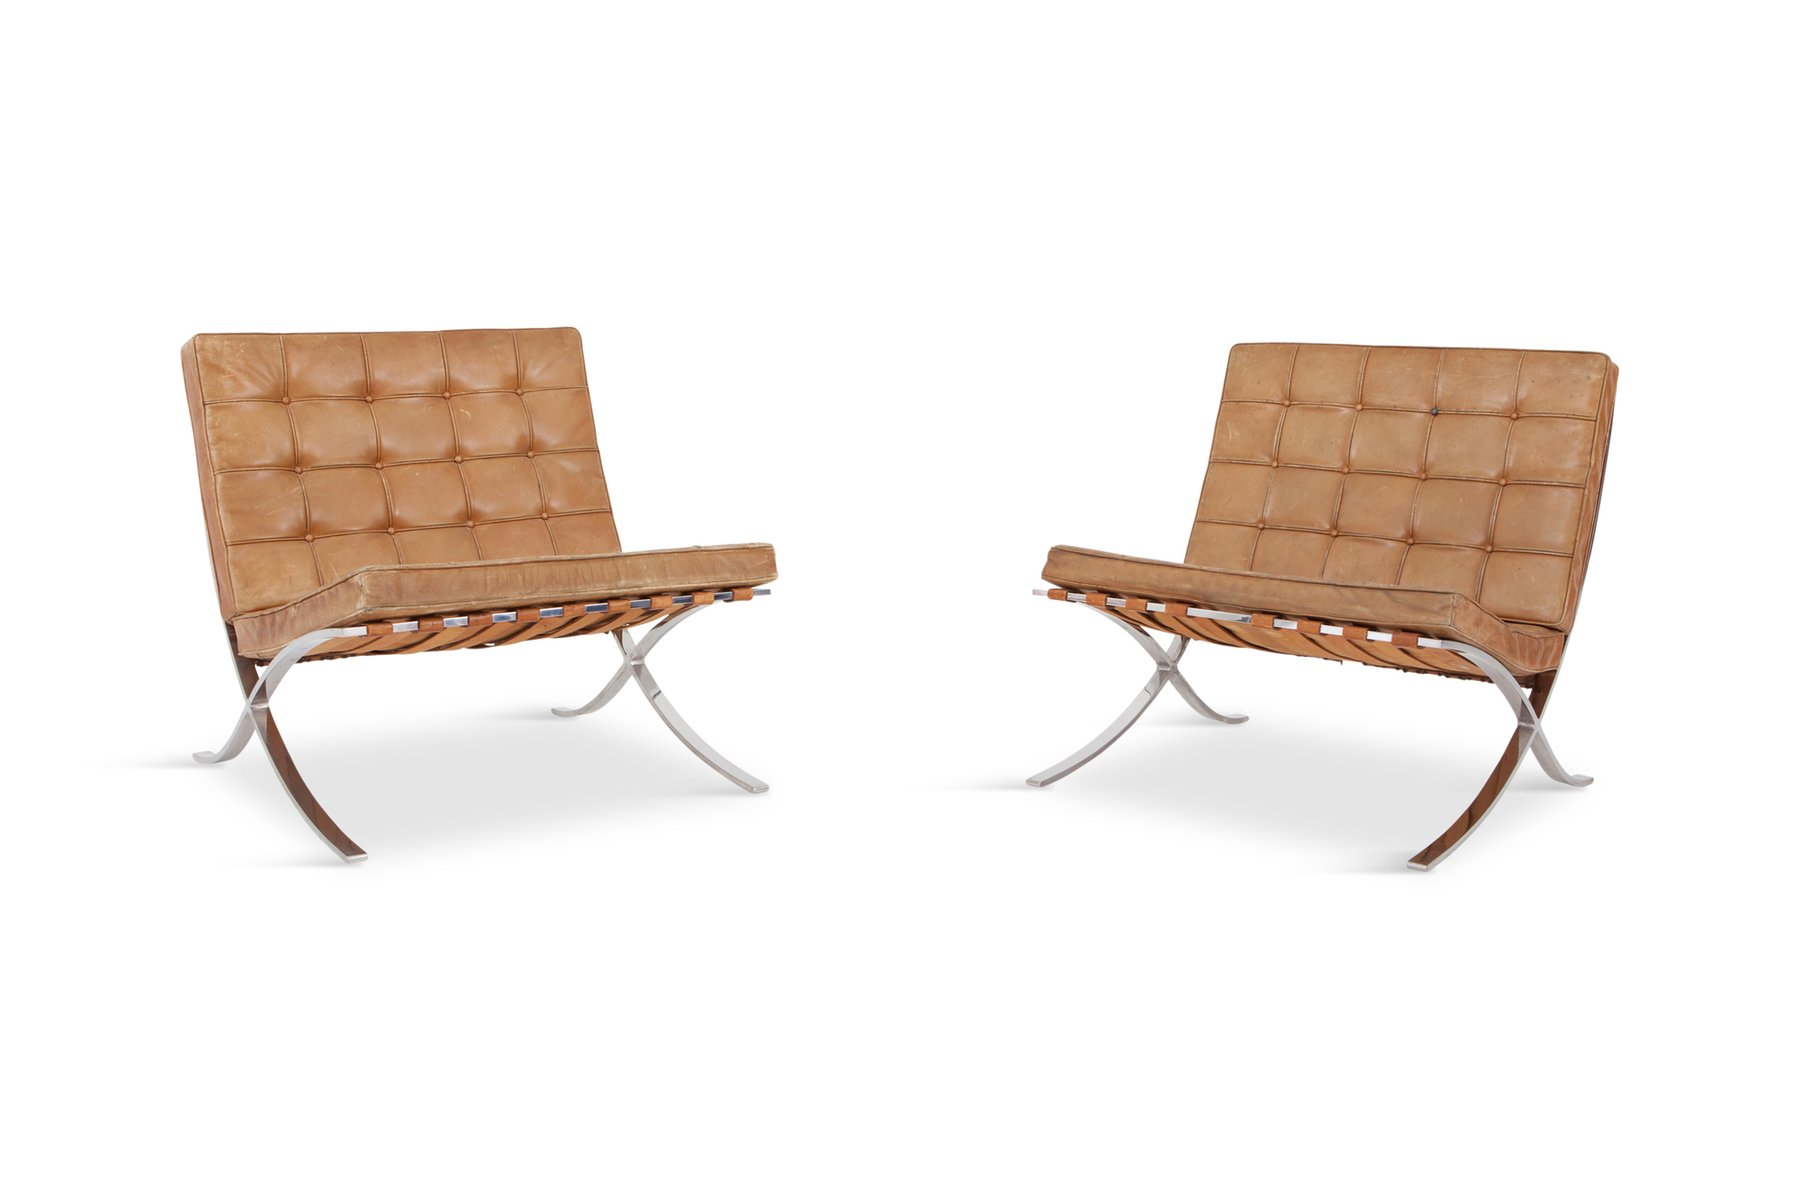 Barcelona Lounge Chairs By Ludwig Mies Van Der Rohe For Knoll 1960s